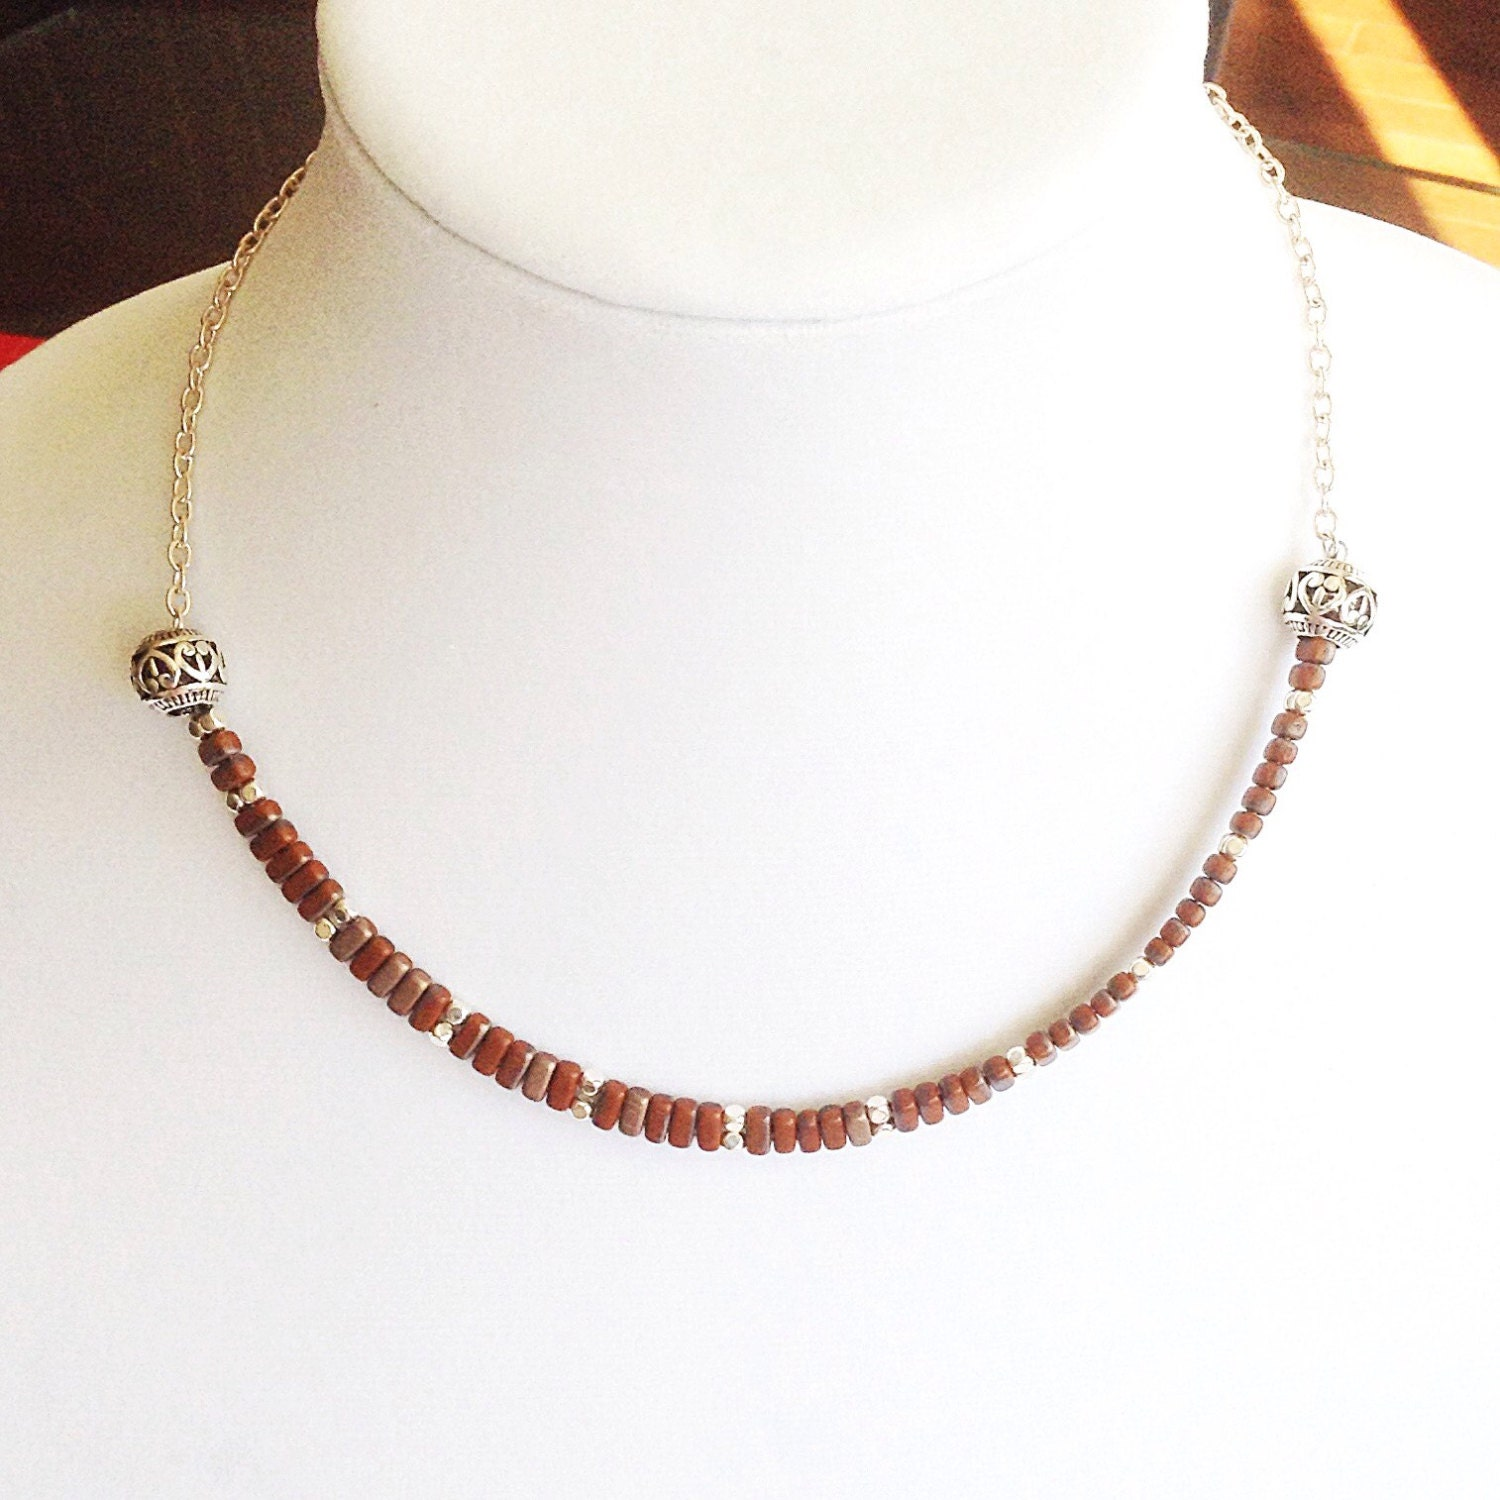 necklace choker necklace delicate necklace silver